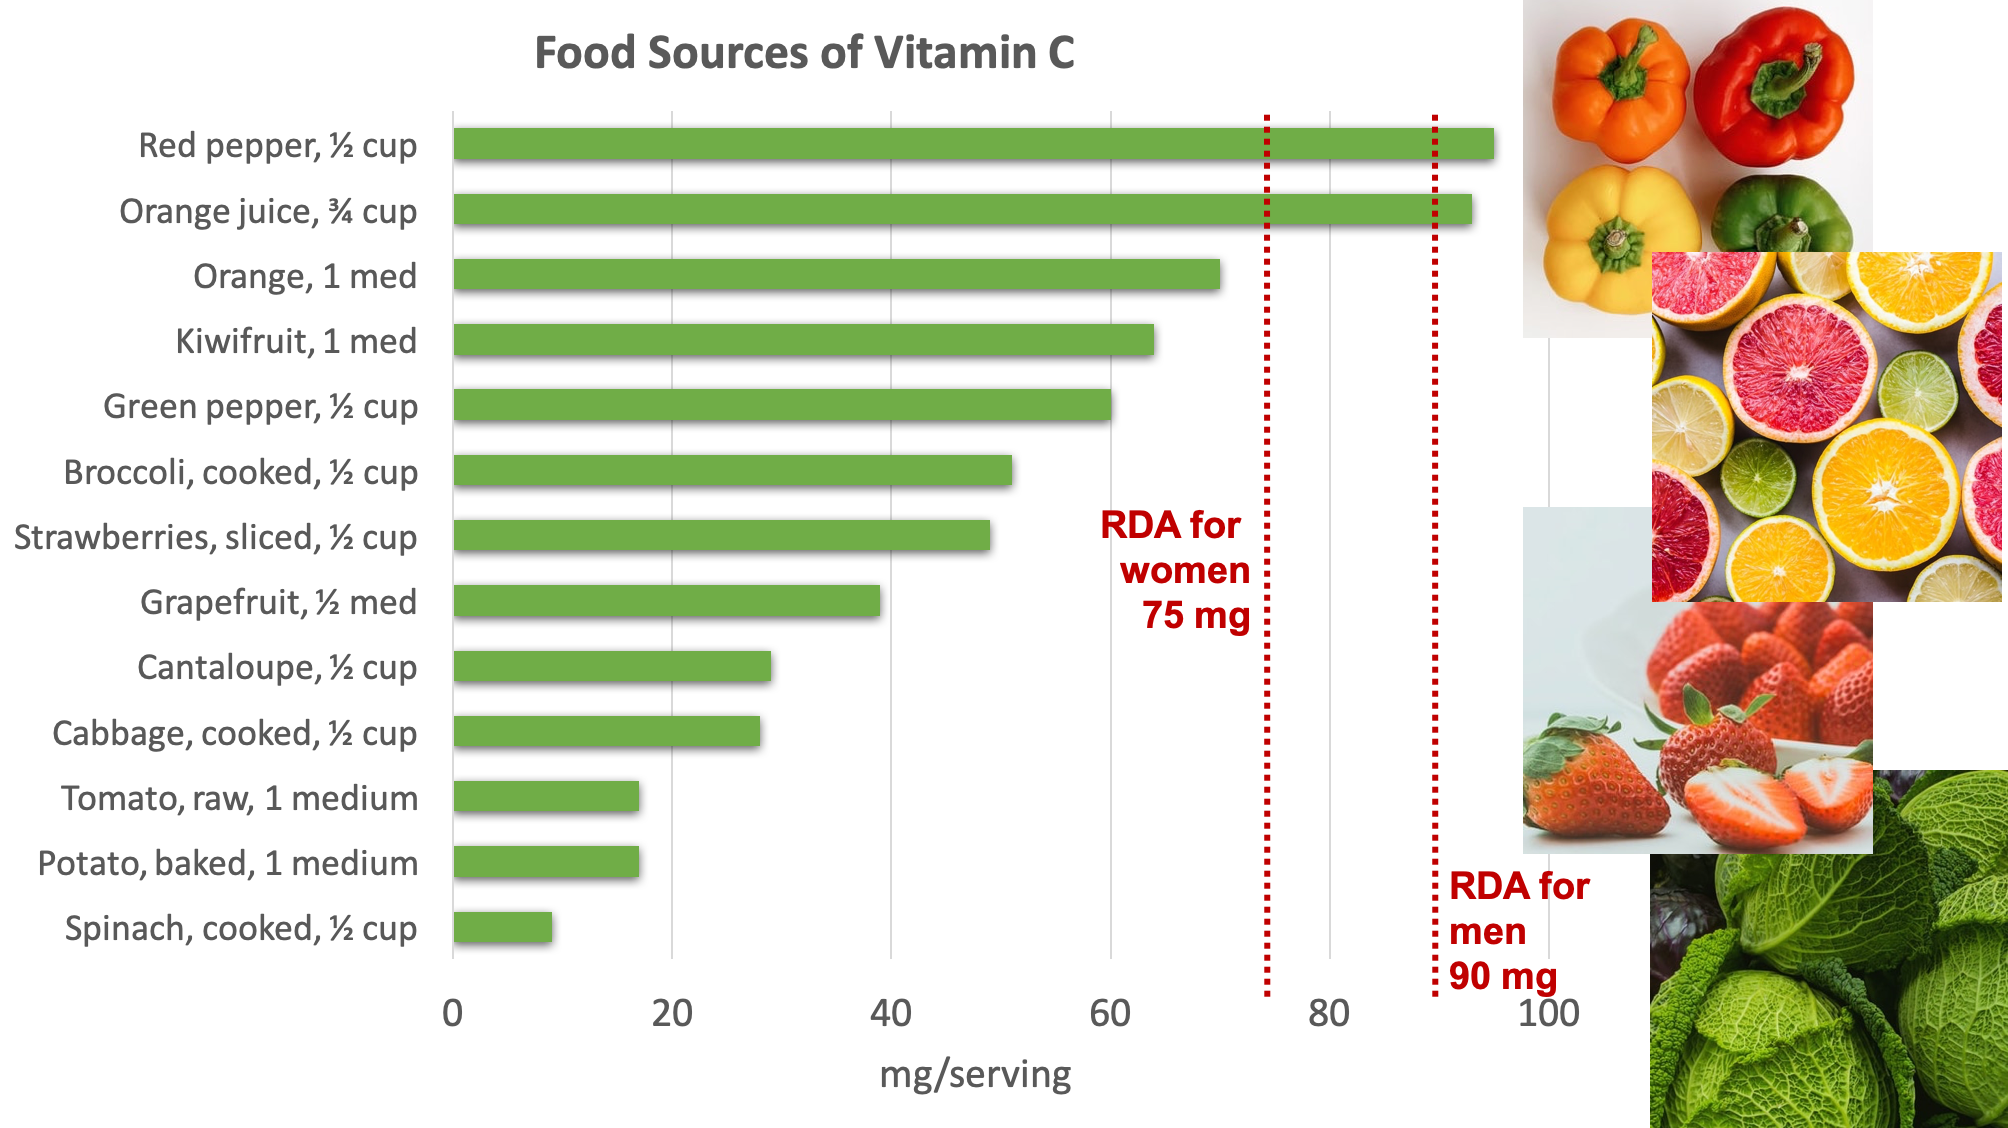 Bar graph showing dietary sources of vitamin C compared with the RDA for adult women of 75 mg per day and for adult men of 90 mg per day. Top sources include bell peppers, citrus fruits and juices, kiwifruit, broccoli, strawberries, cantaloupe, cabbage, tomatoes, potatoes, and spinach. Photos are shown of bell peppers, citrus fruits, strawberries, and cabbage.